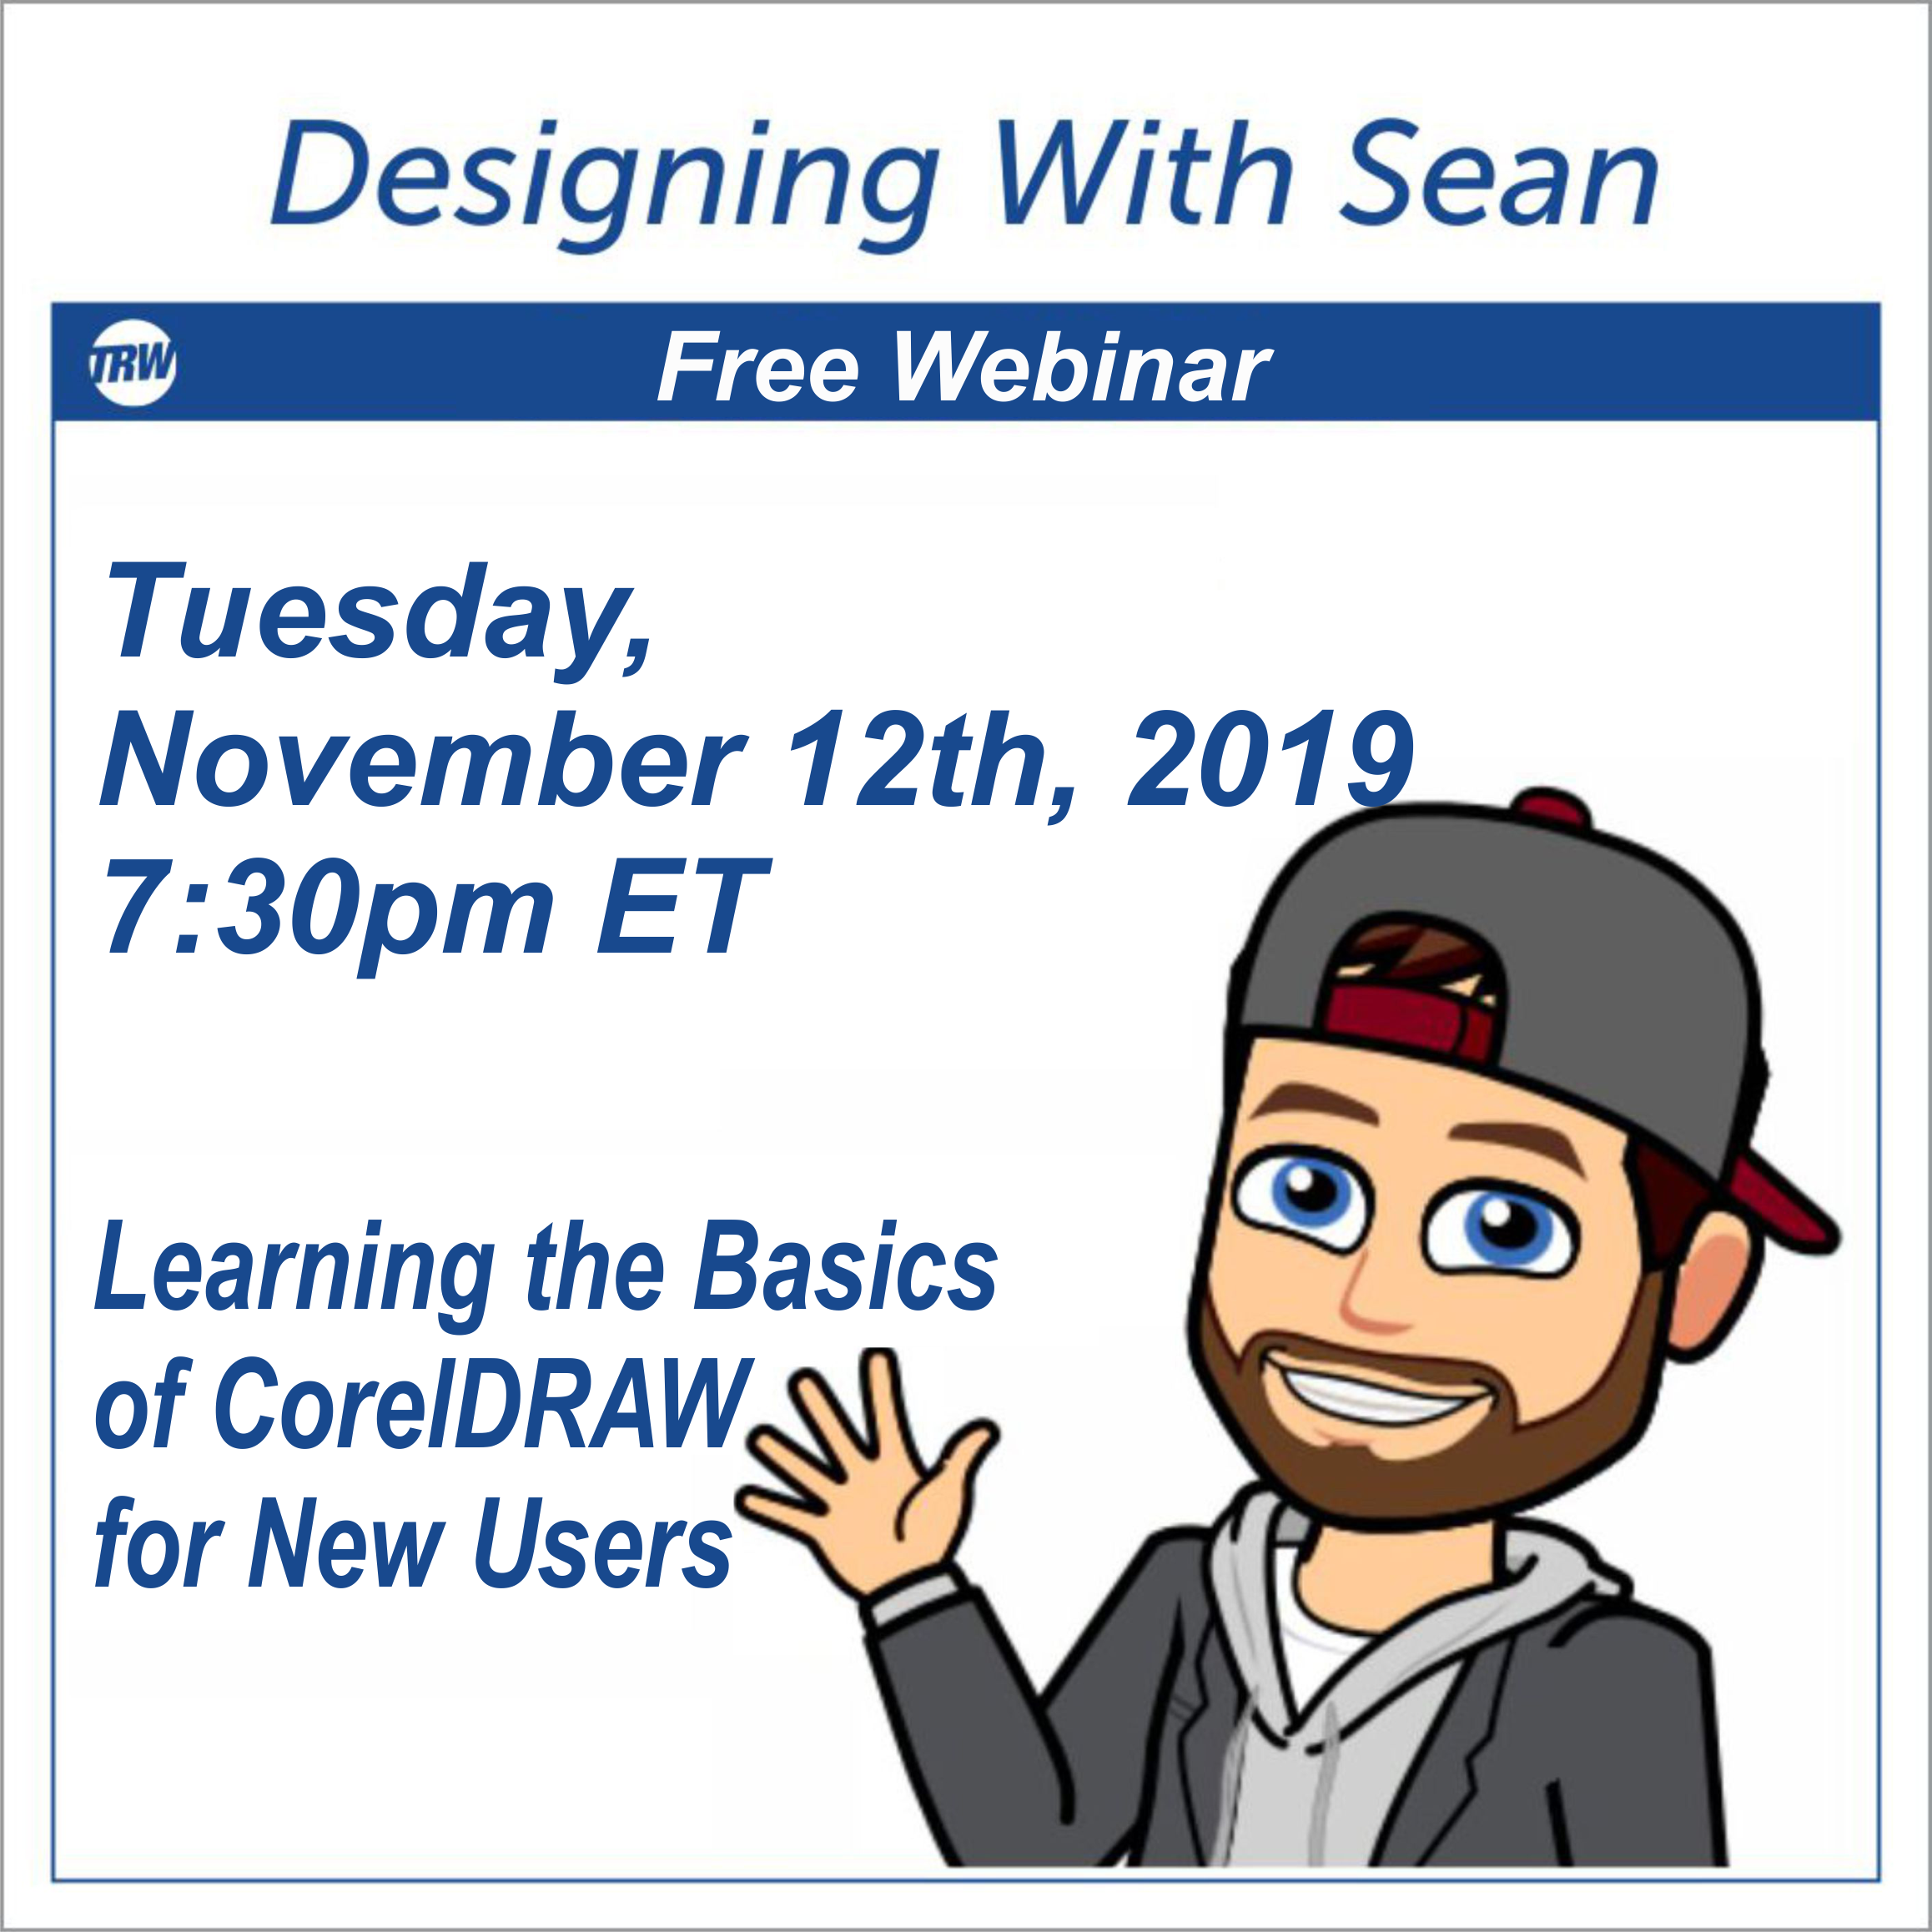 Designing with Sean | Learning the Basics of CorelDRAW for New Users - November 12th, 2019